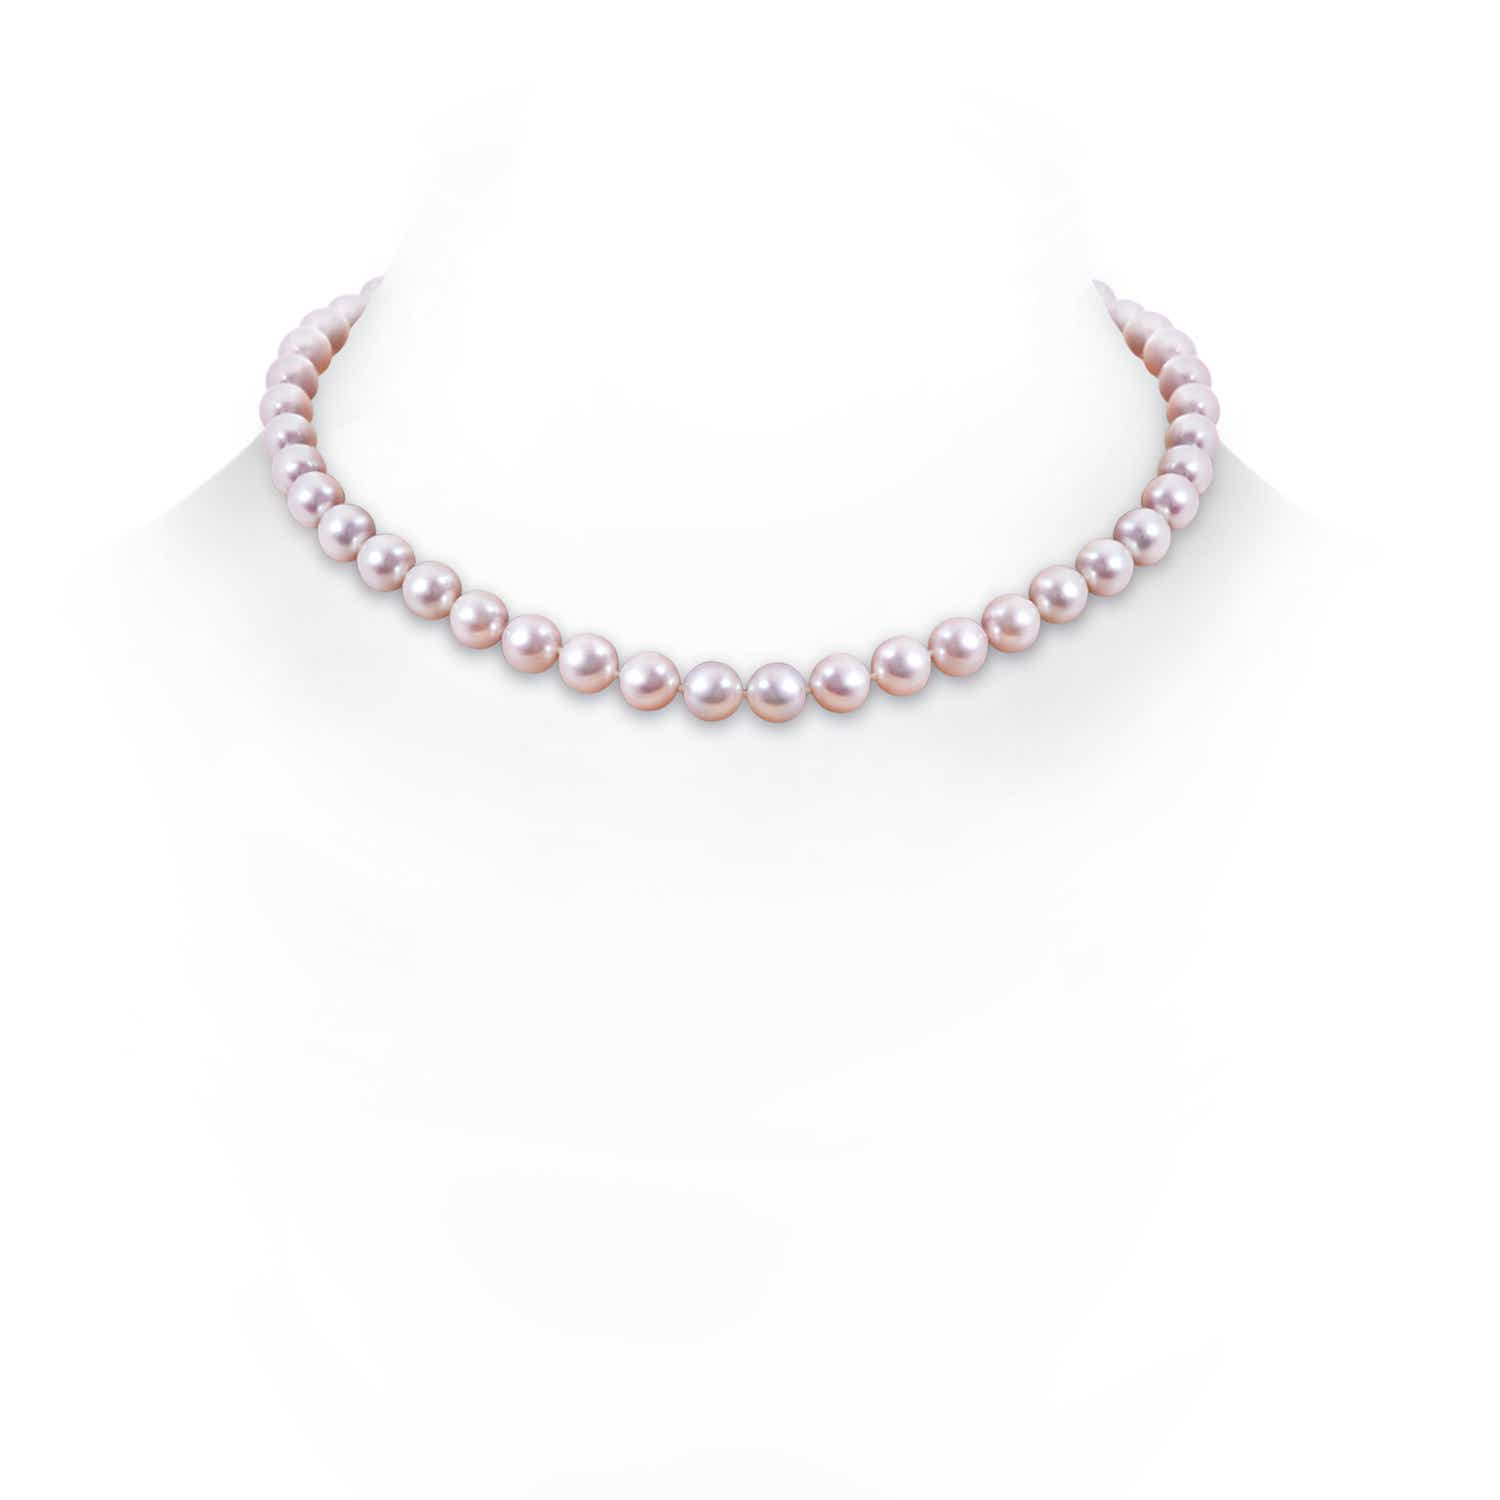 Angara 20 Single Strand Akoya Cultured Pearl Necklace UFwJFm